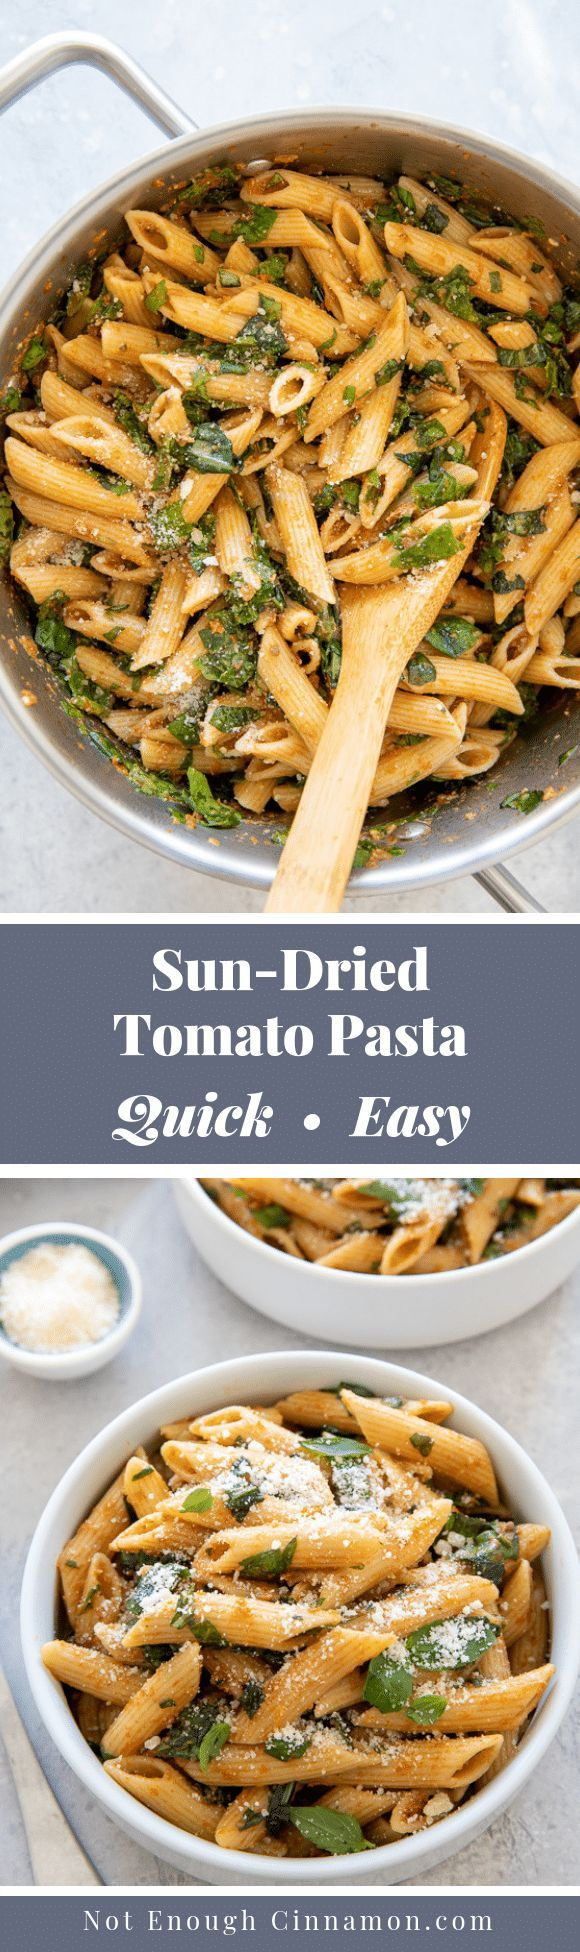 Easy Sun-Dried Tomato Pasta with Spinach